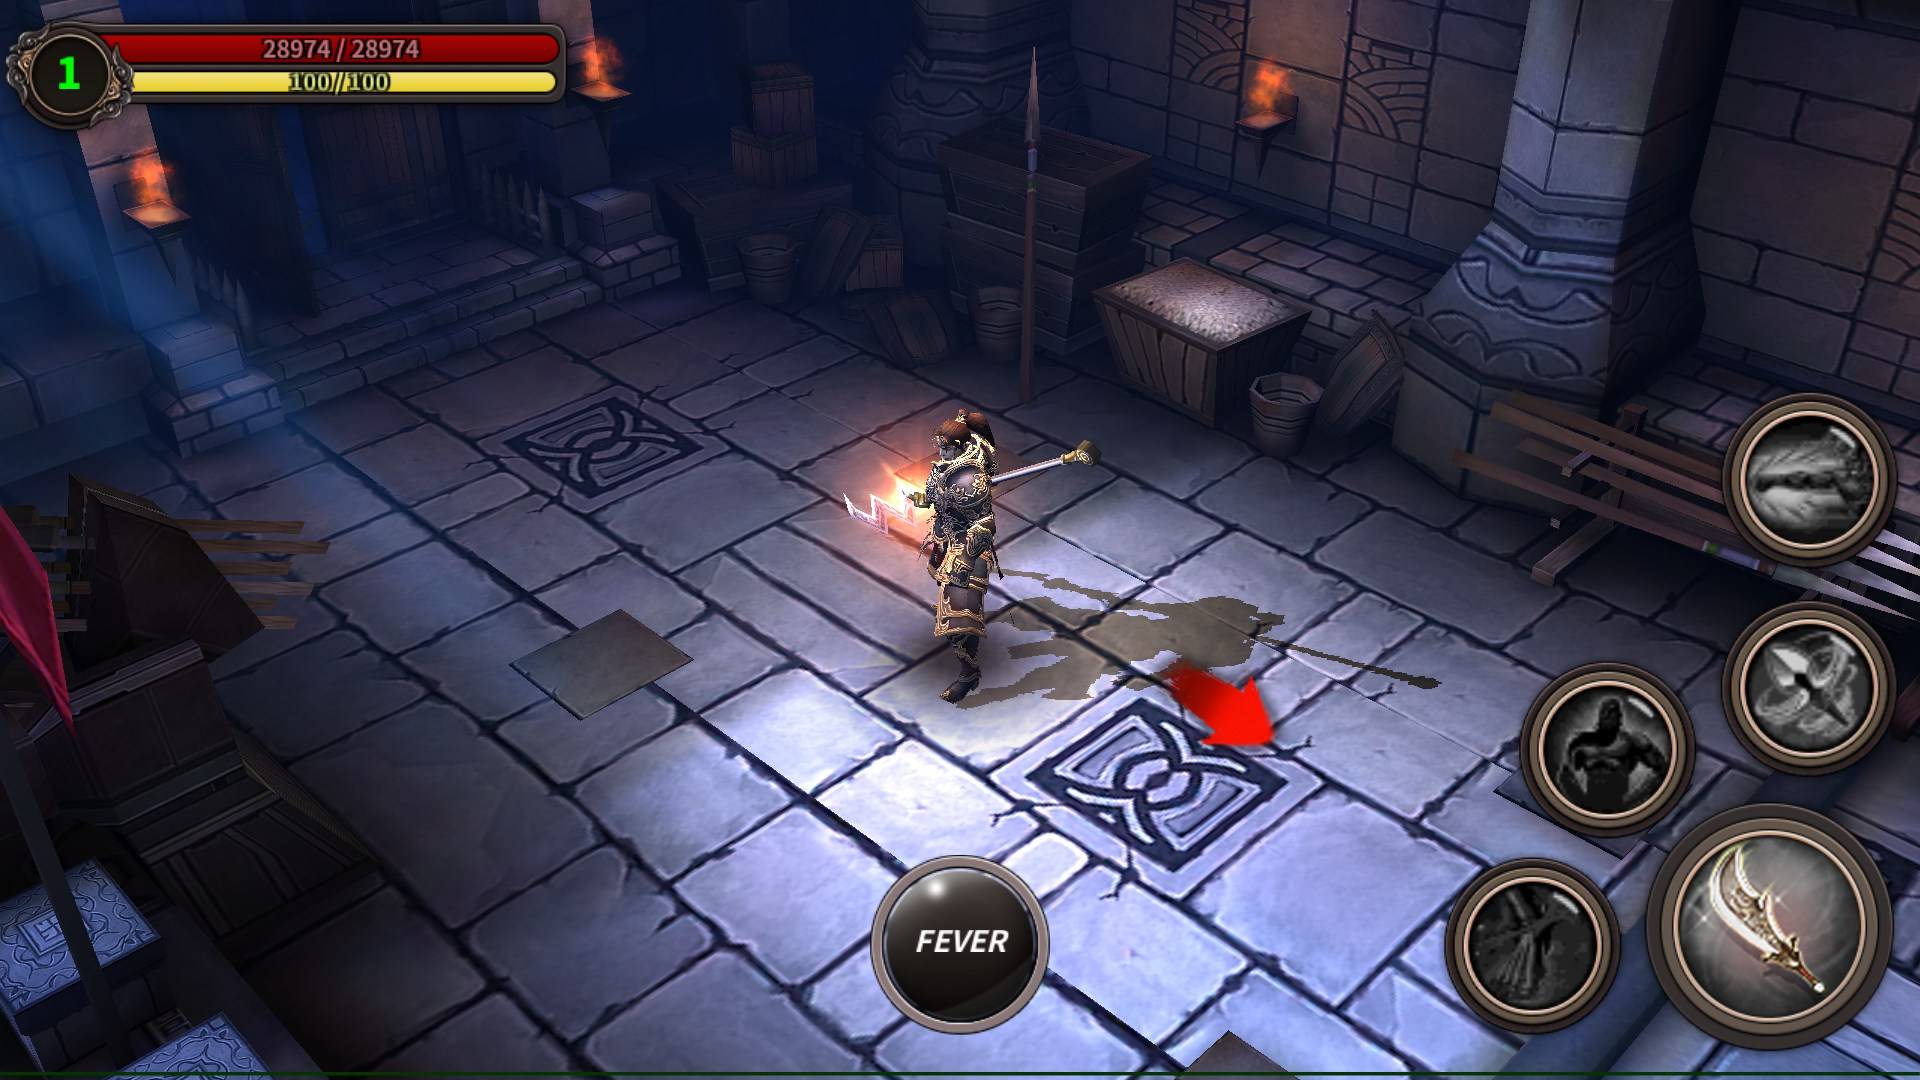 Magic rush: heroes for sony xperia m 2018 – free download games.